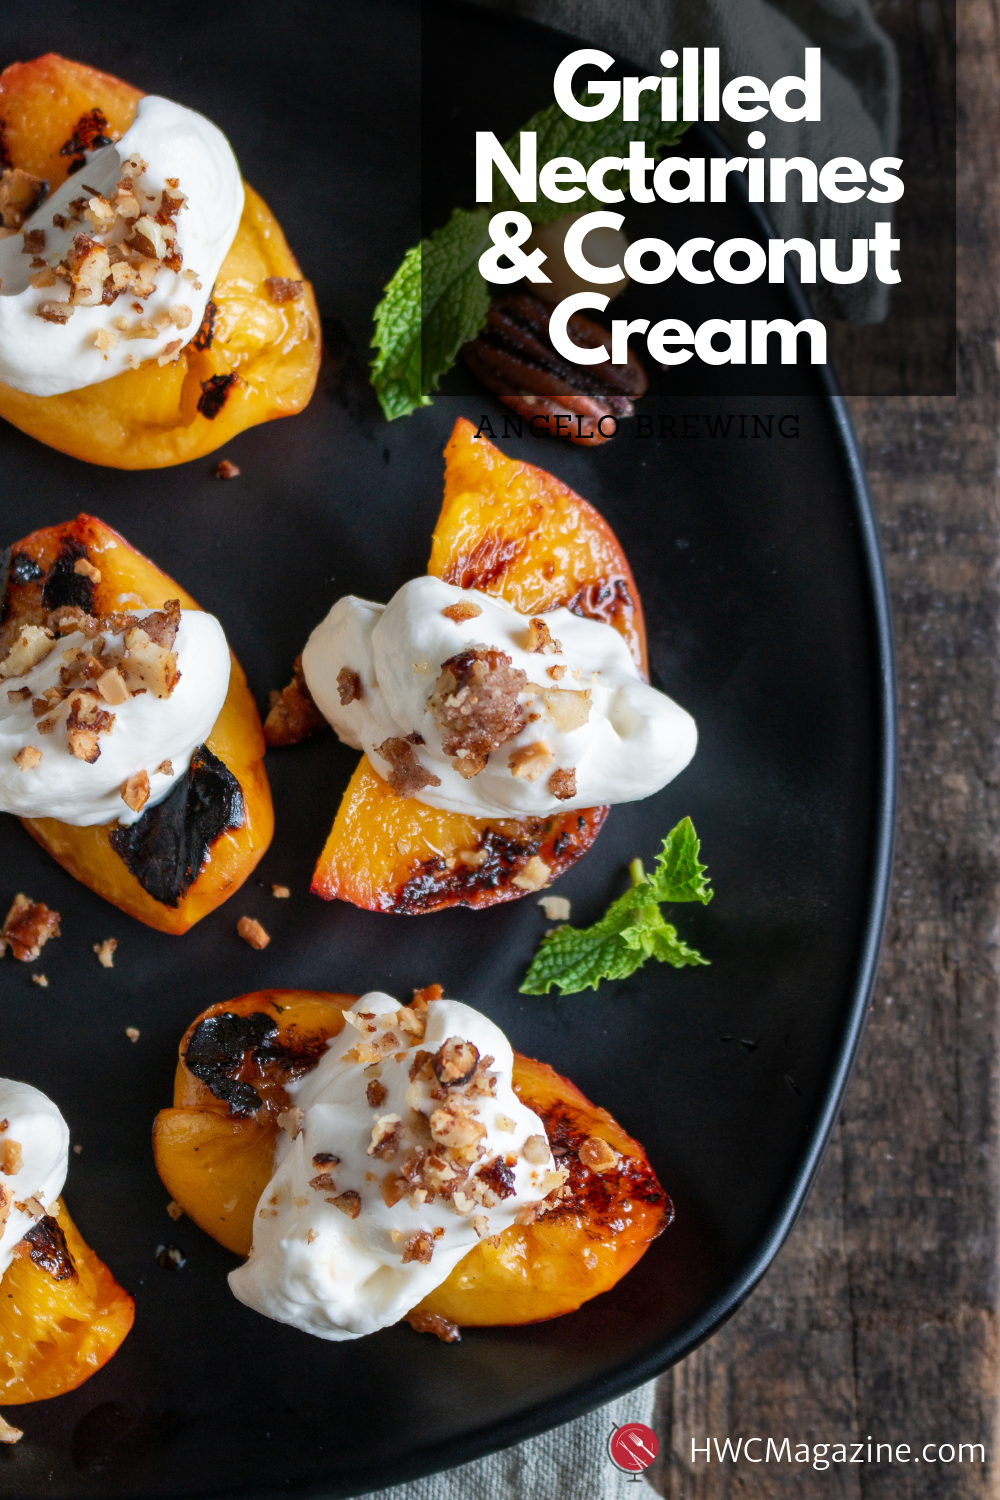 Grilled Nectarines and Coconut Cream / https://www.hwcmagazine.com